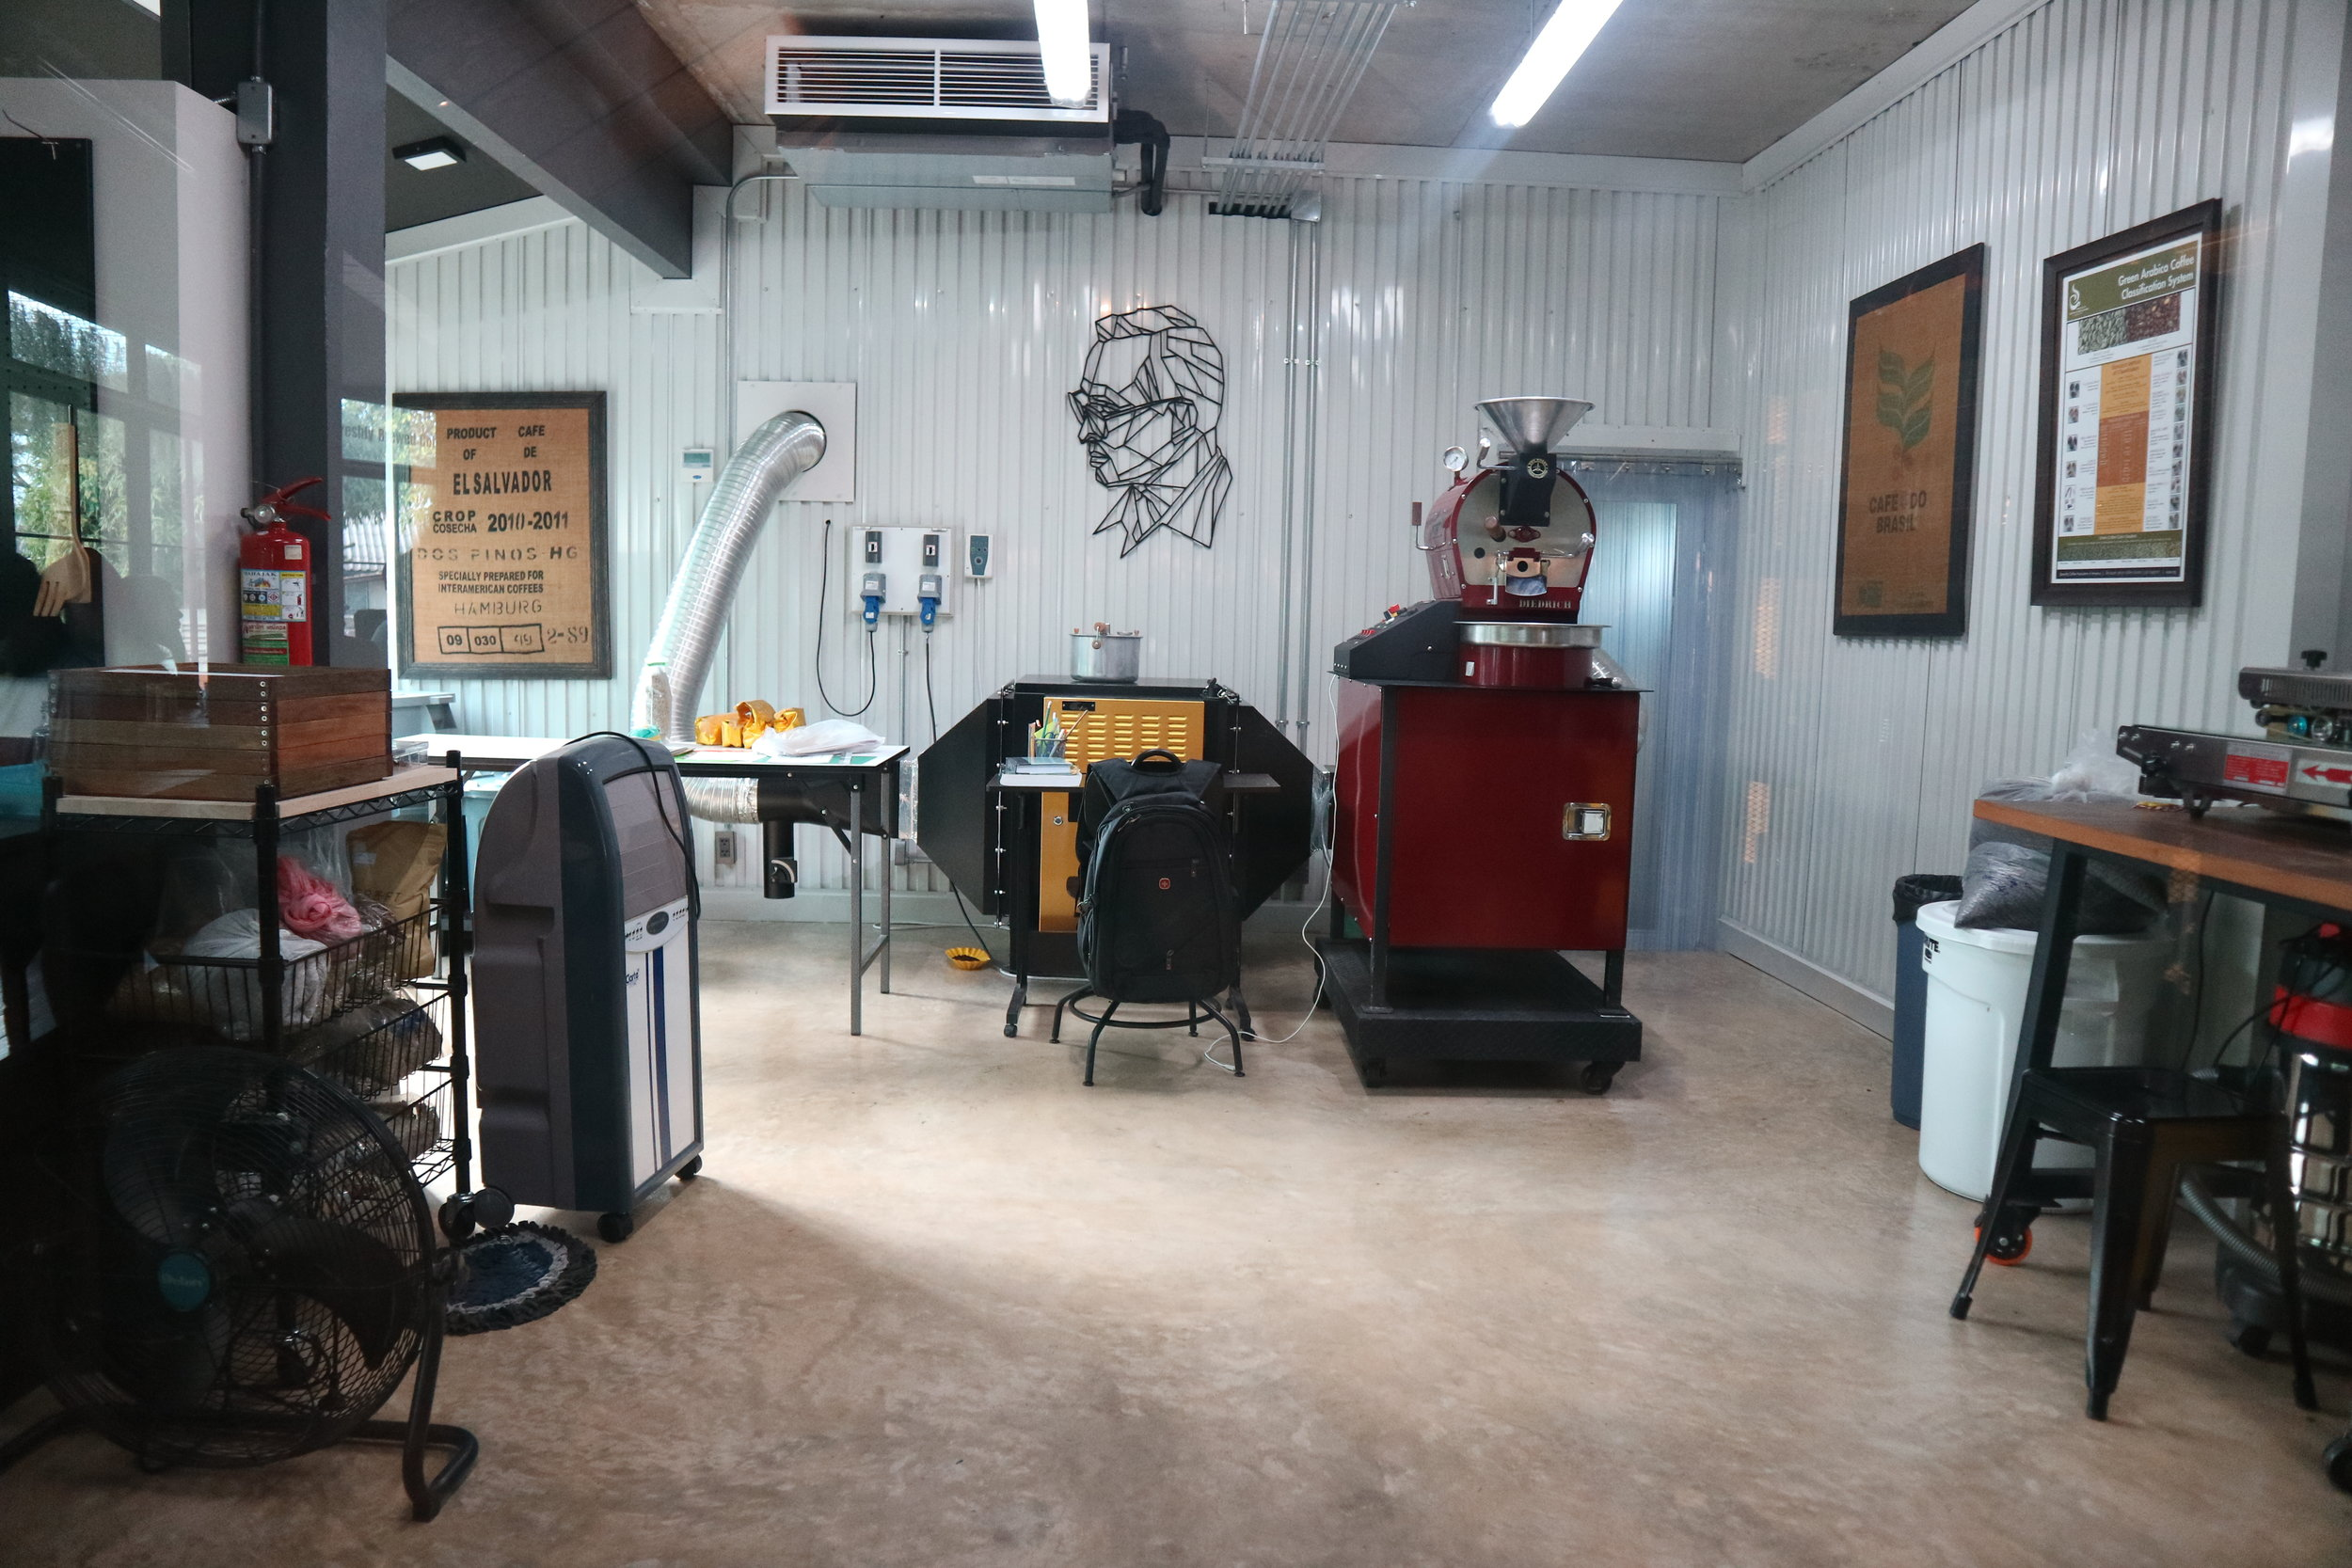 The roastery at The Roastery. Roj has all the best toys and tools...